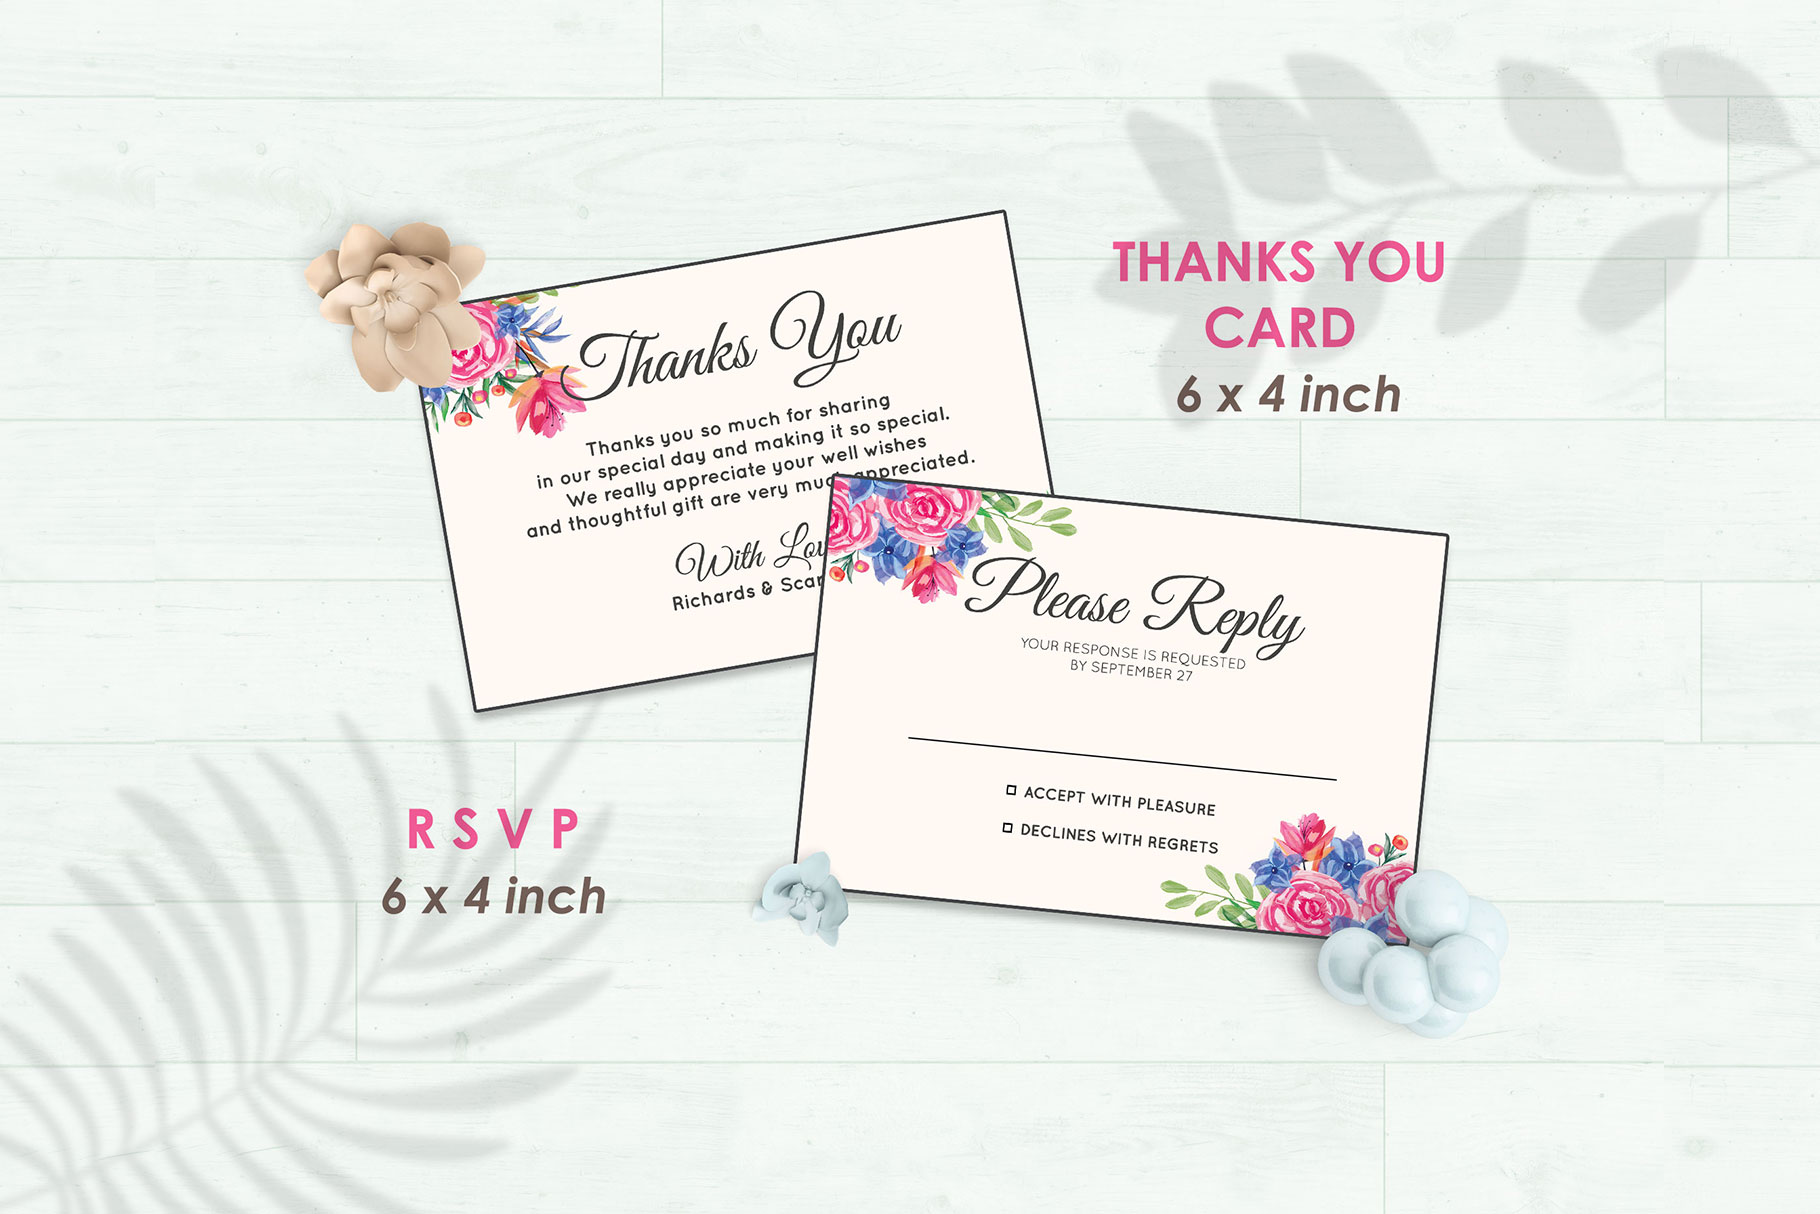 Wedding Invitation Set #8 Watercolor Floral Flower Style example image 4